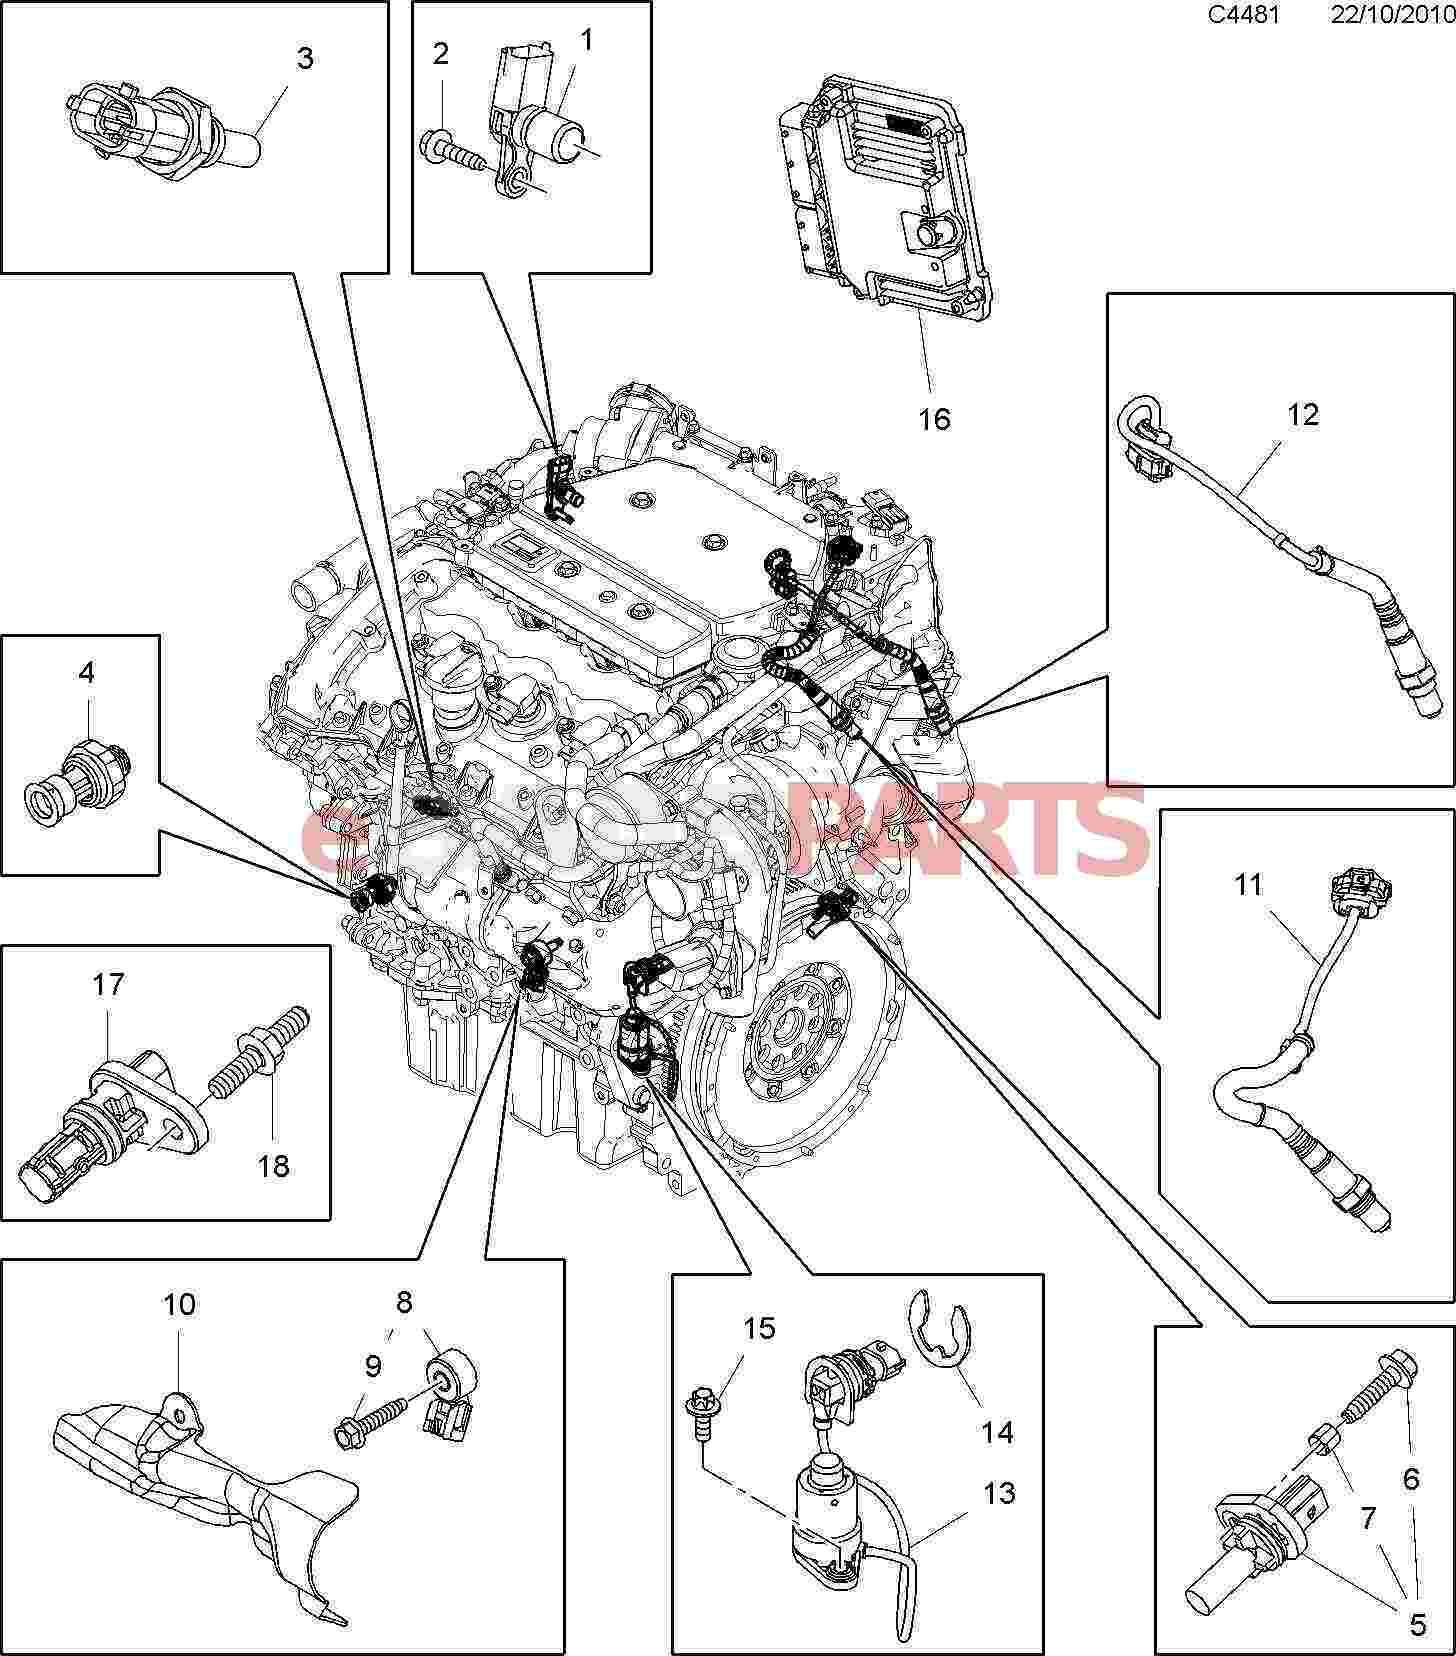 2003 Saturn Vue Engine Parts Diagram Schematics Data Wiring Diagrams Repair Saab 9 3 Suspension U2022 For Free 2008 Manual